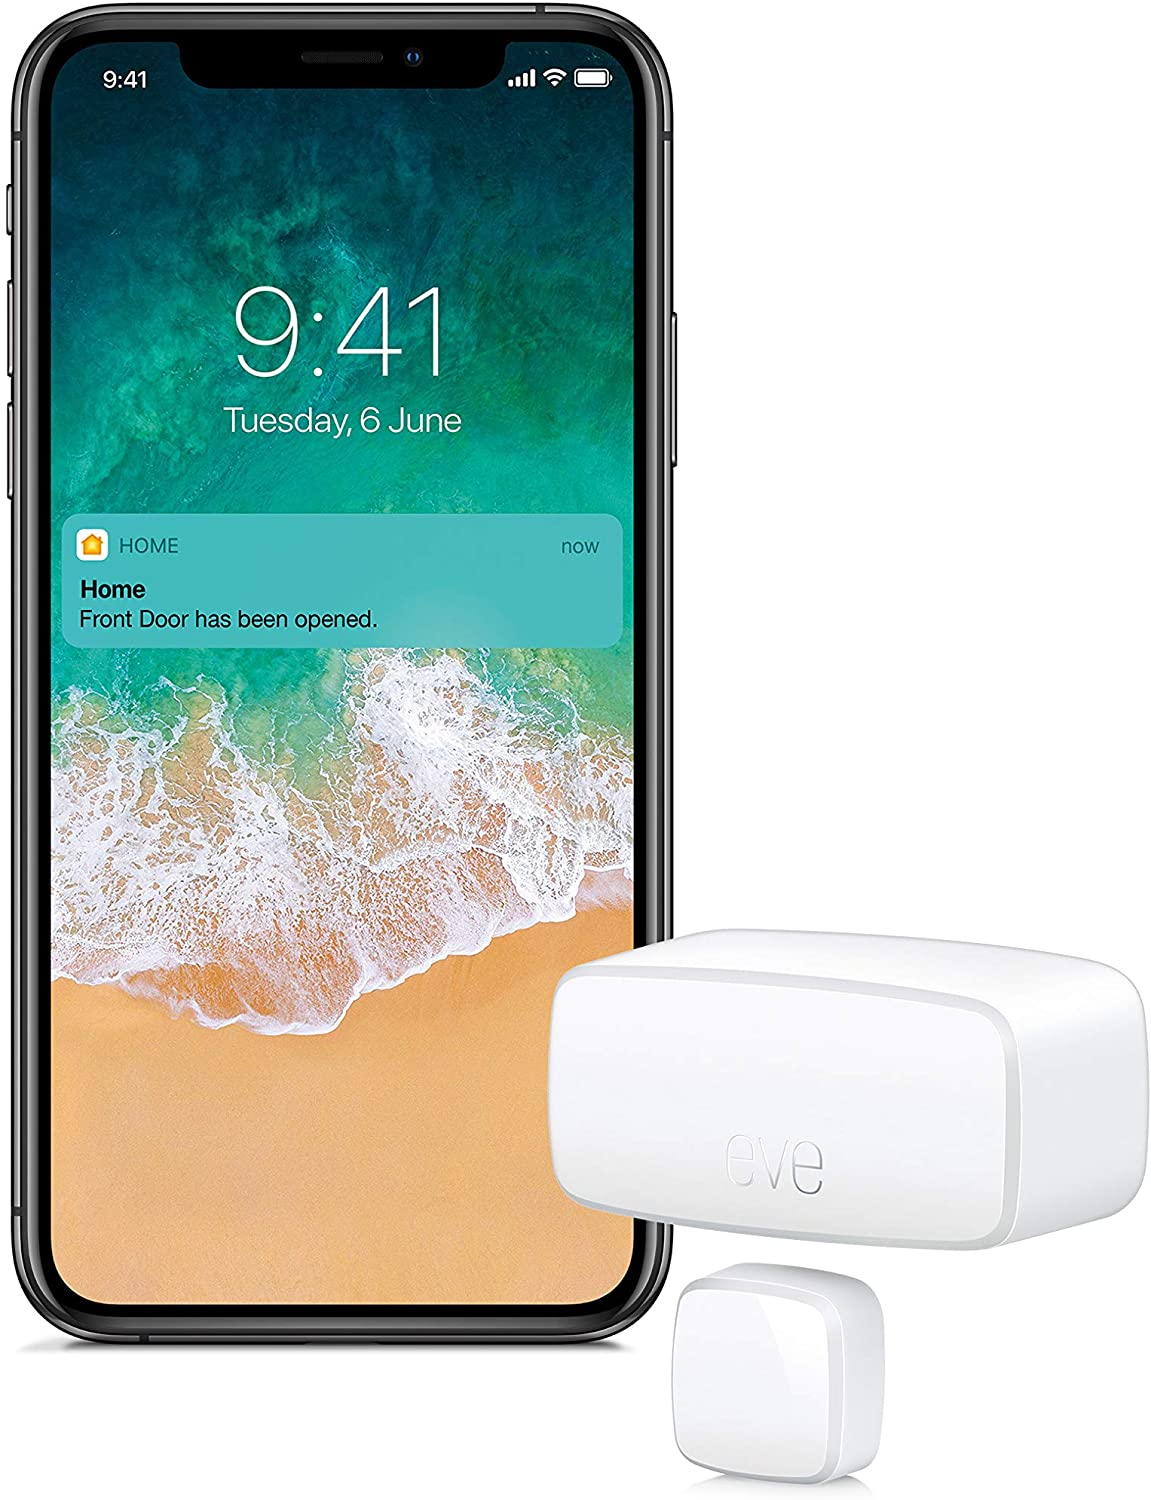 Eve Door & Window - Sensor inalámbrico de contacto, Bluetooth Low Energy, non occorrono bridge o gateway, blanco (Apple HomeKit)